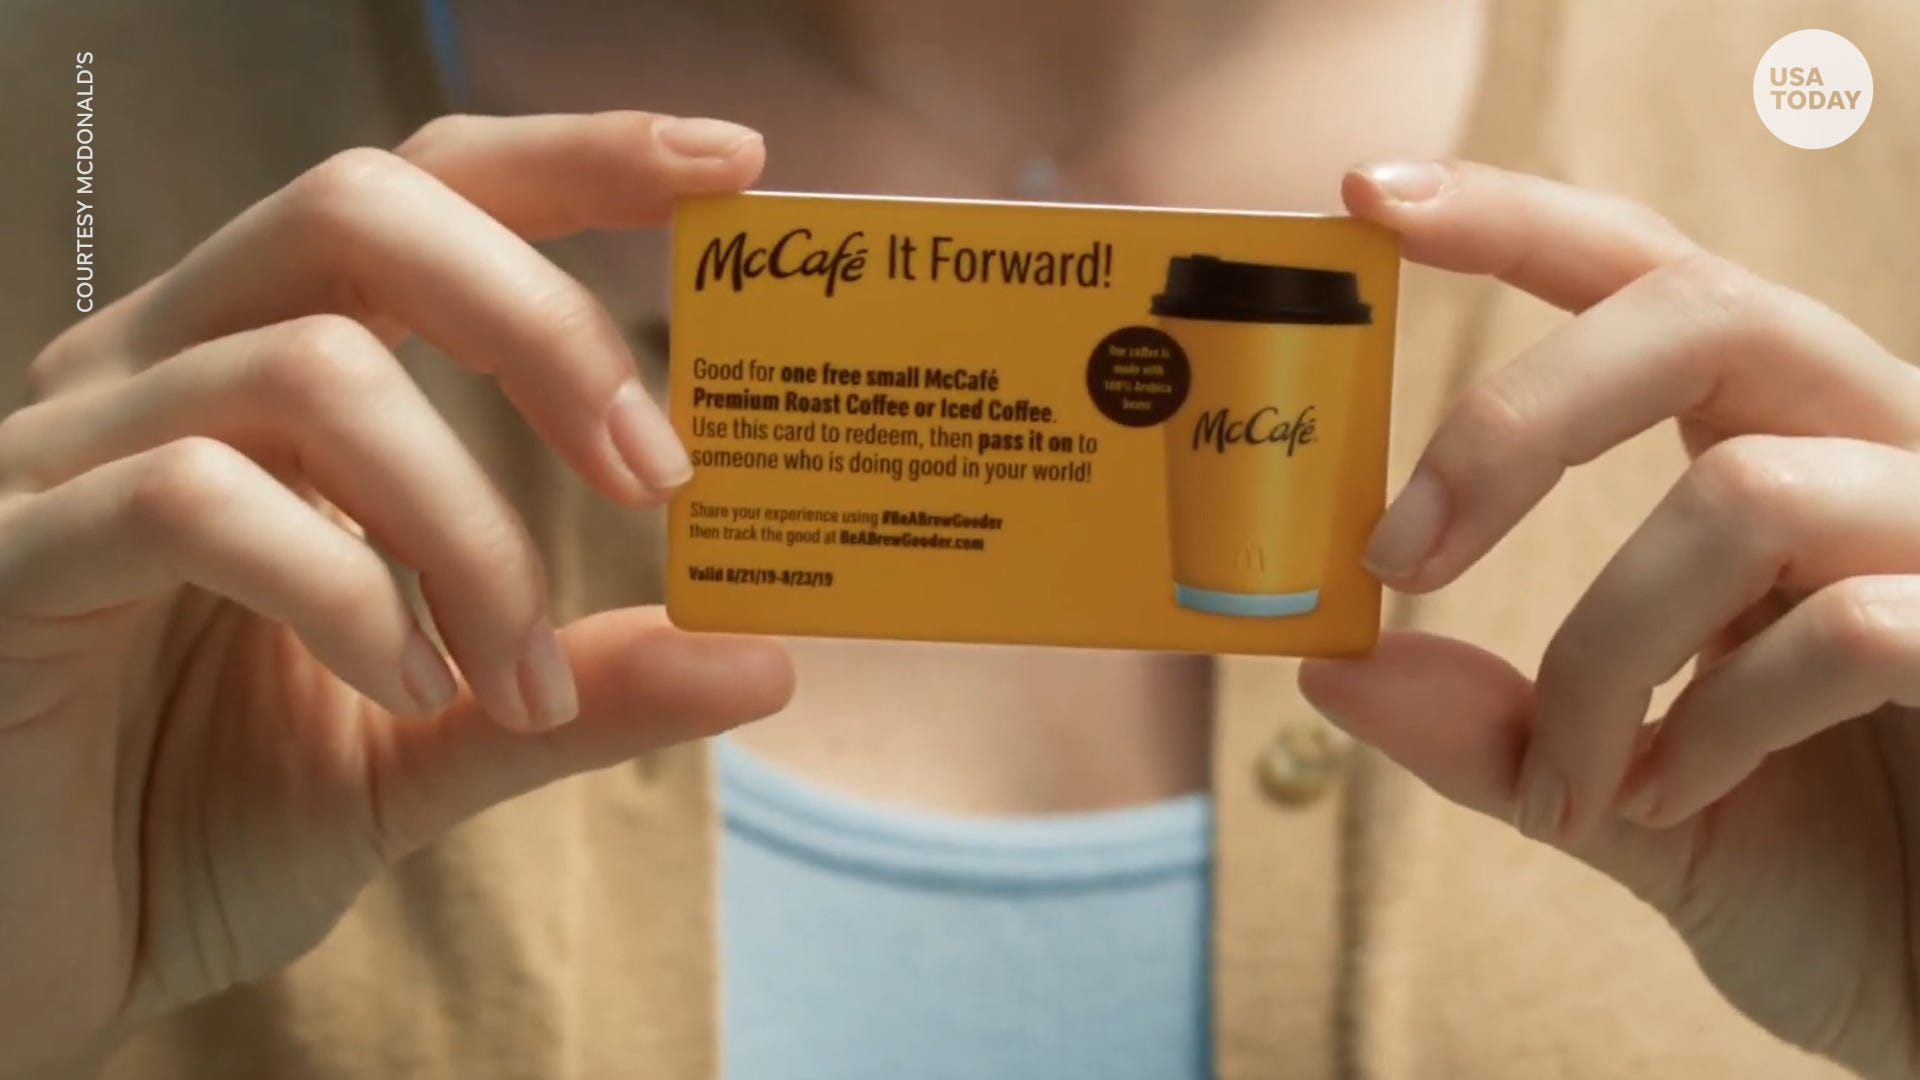 McDonald's is spreading kindness and coffee with 'McCafé It Forward' card